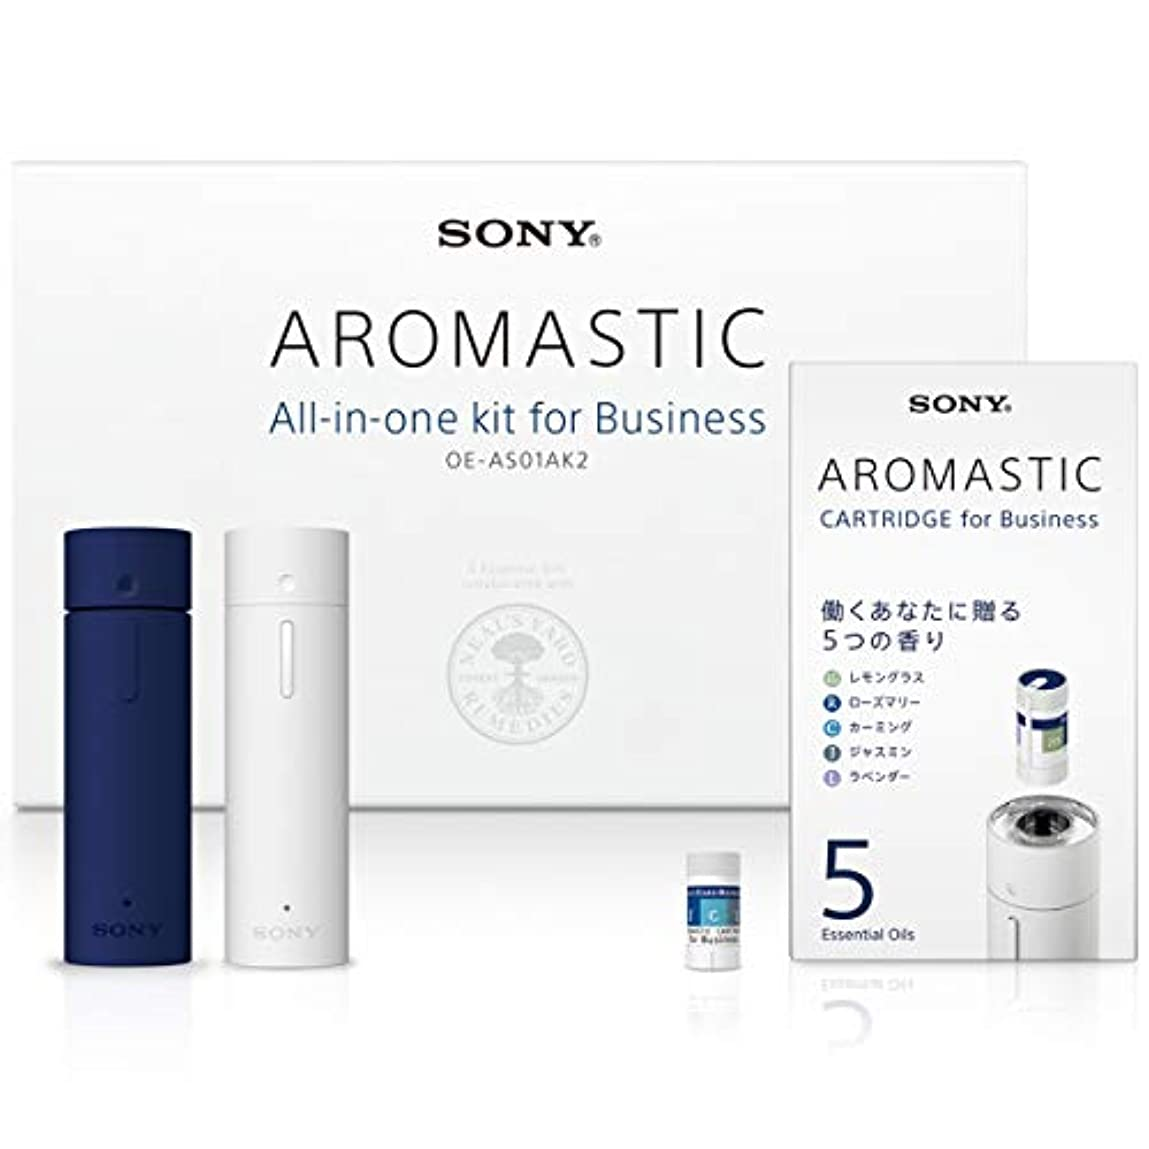 AROMASTIC All-in-one kit for Business (オールインワンキット for Business) OE-AS01AK2